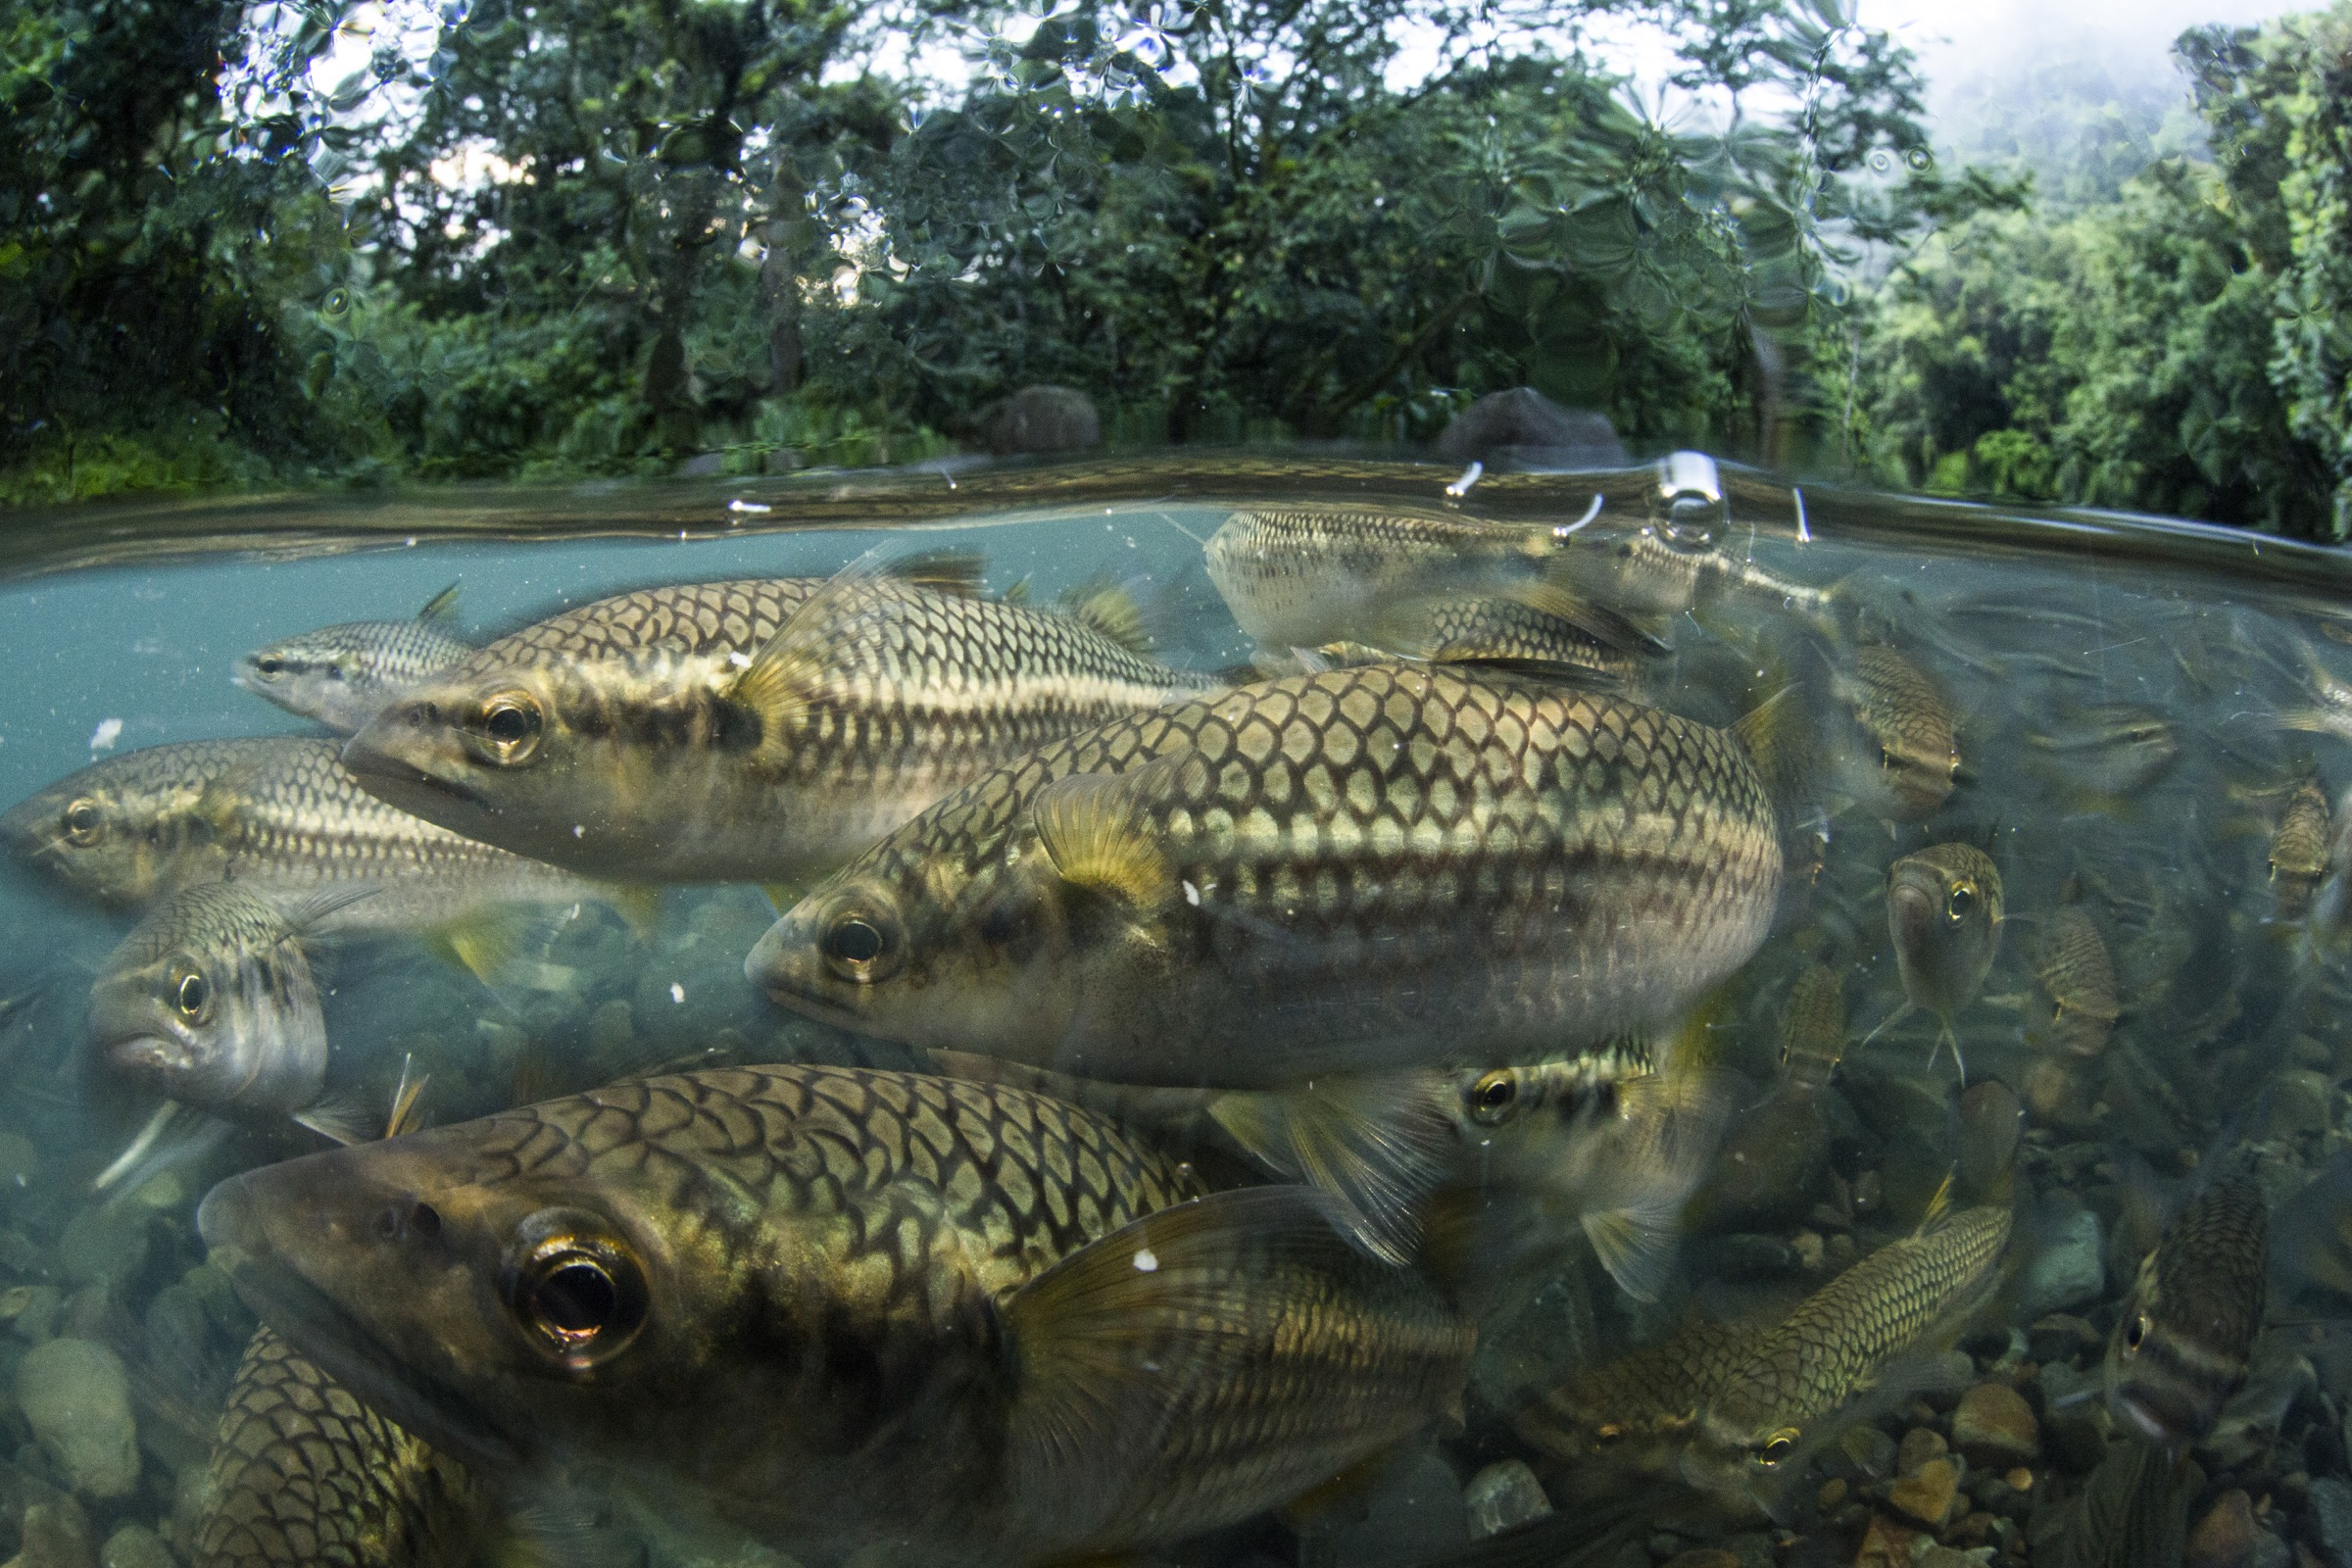 Migratory fish like these mountain mullet (Agonostomus monticola) are a common sight in Central American rivers.